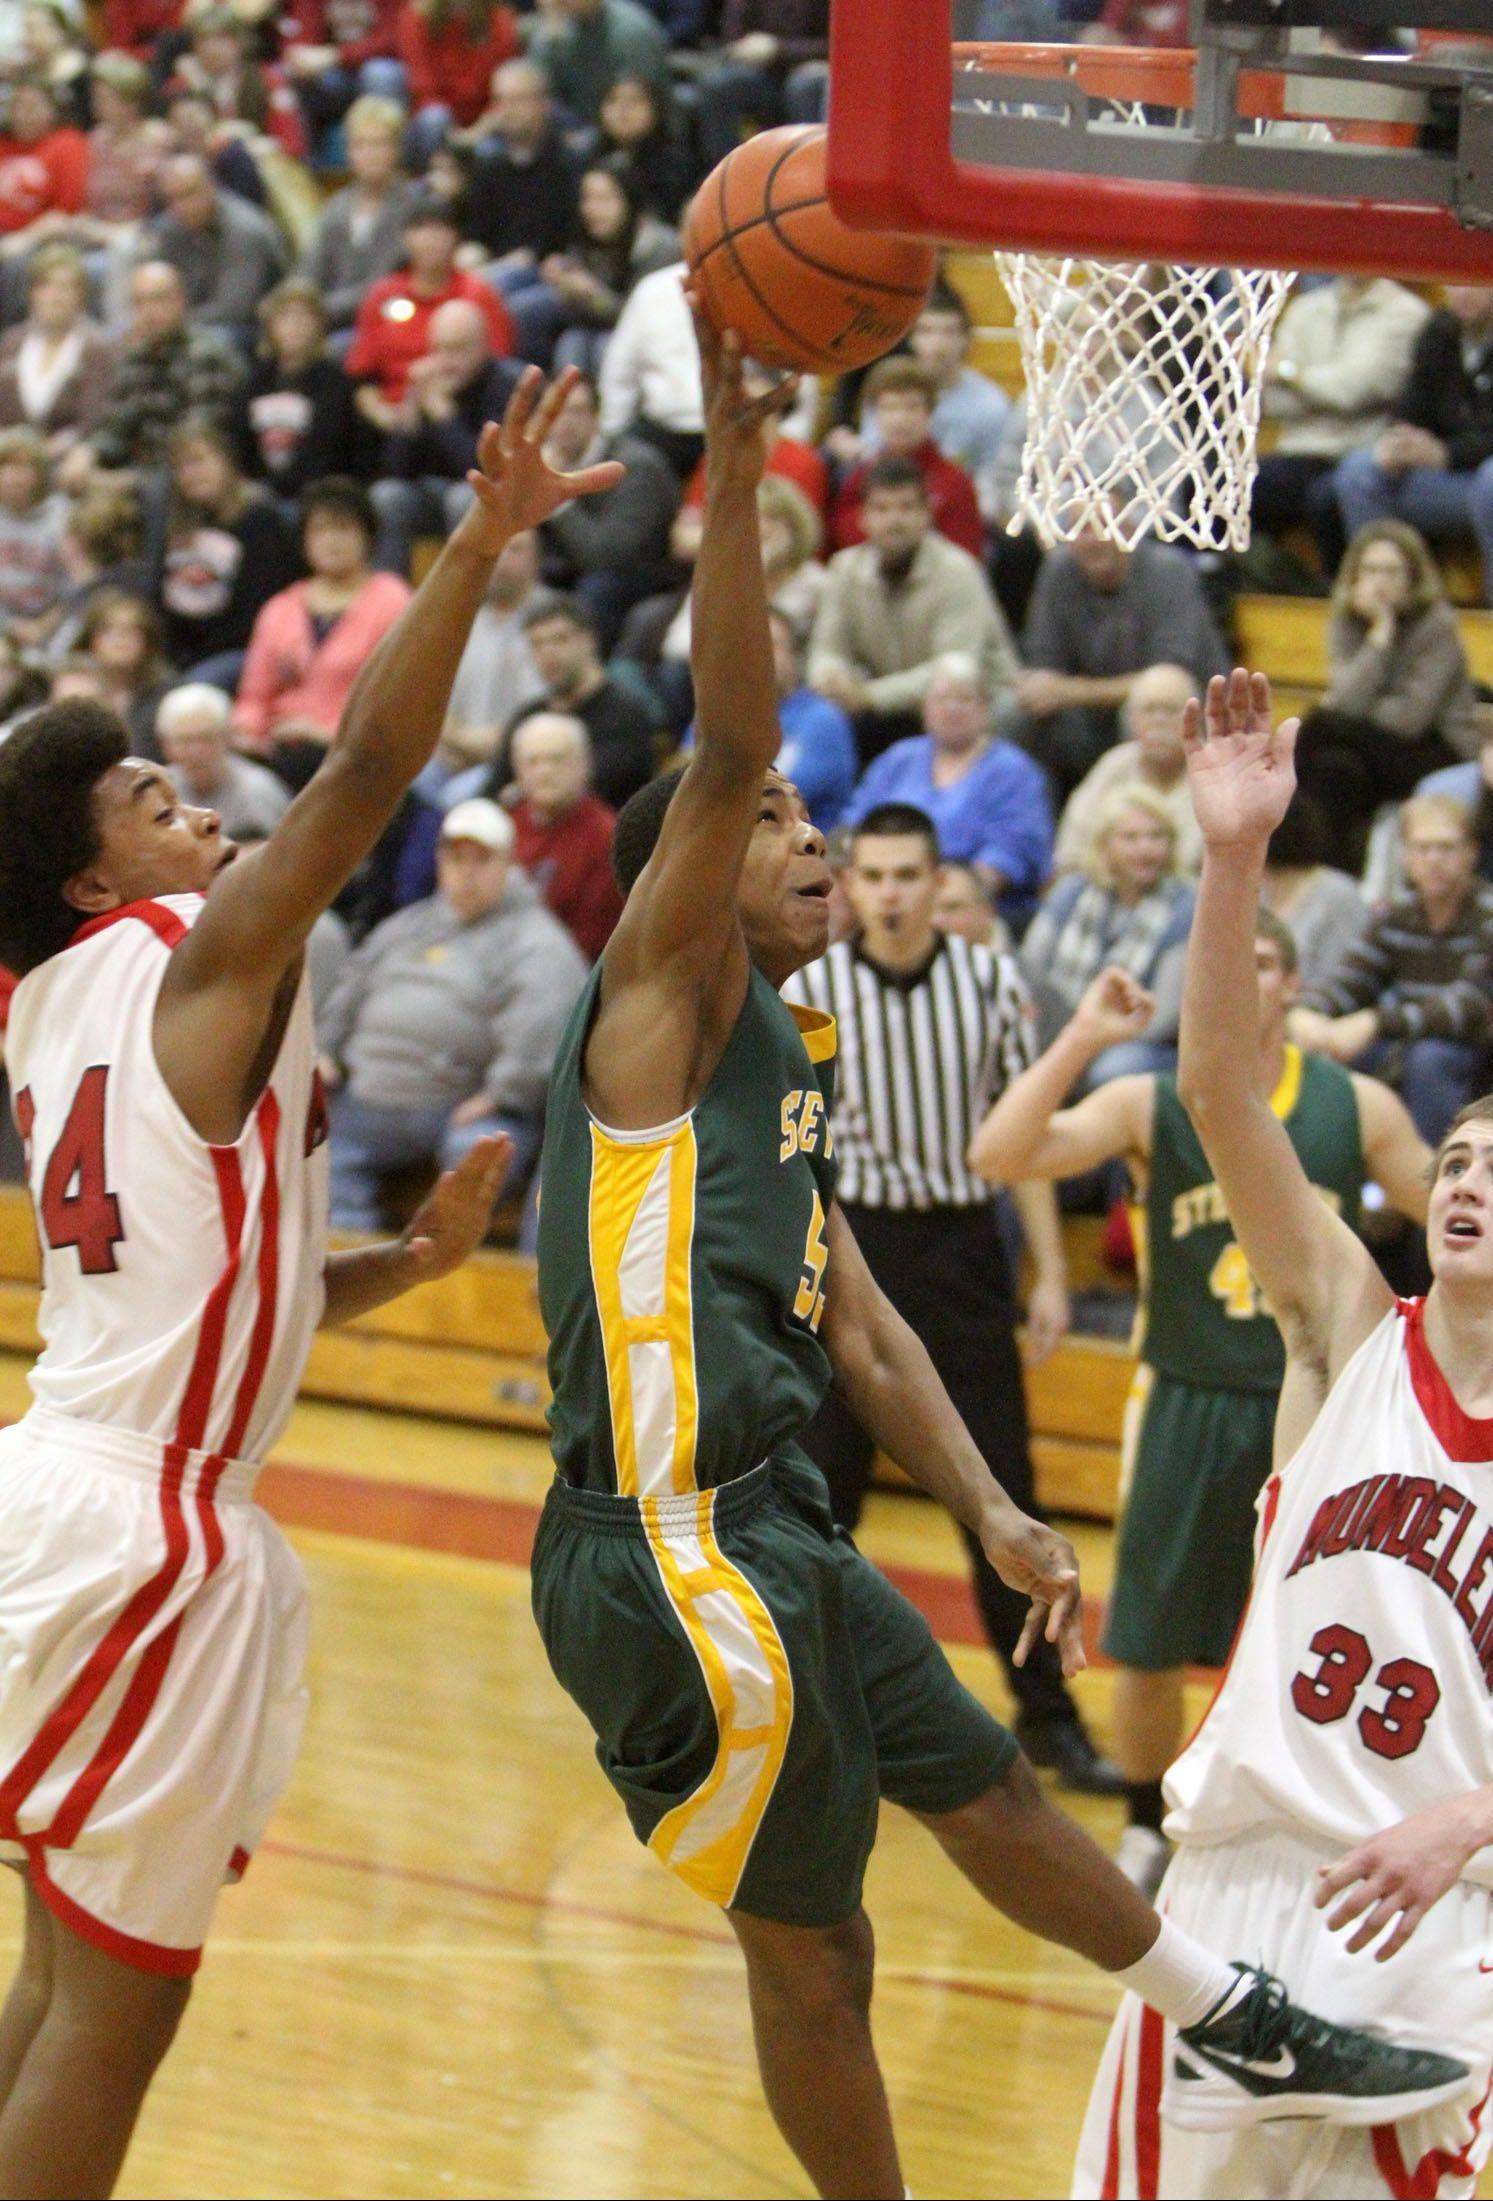 Mundelein's Cliff Dunigan, left, shown here defending a shot by Stevenson's Connor Cashaw last season, will play next season at Missouri Science and Technology.